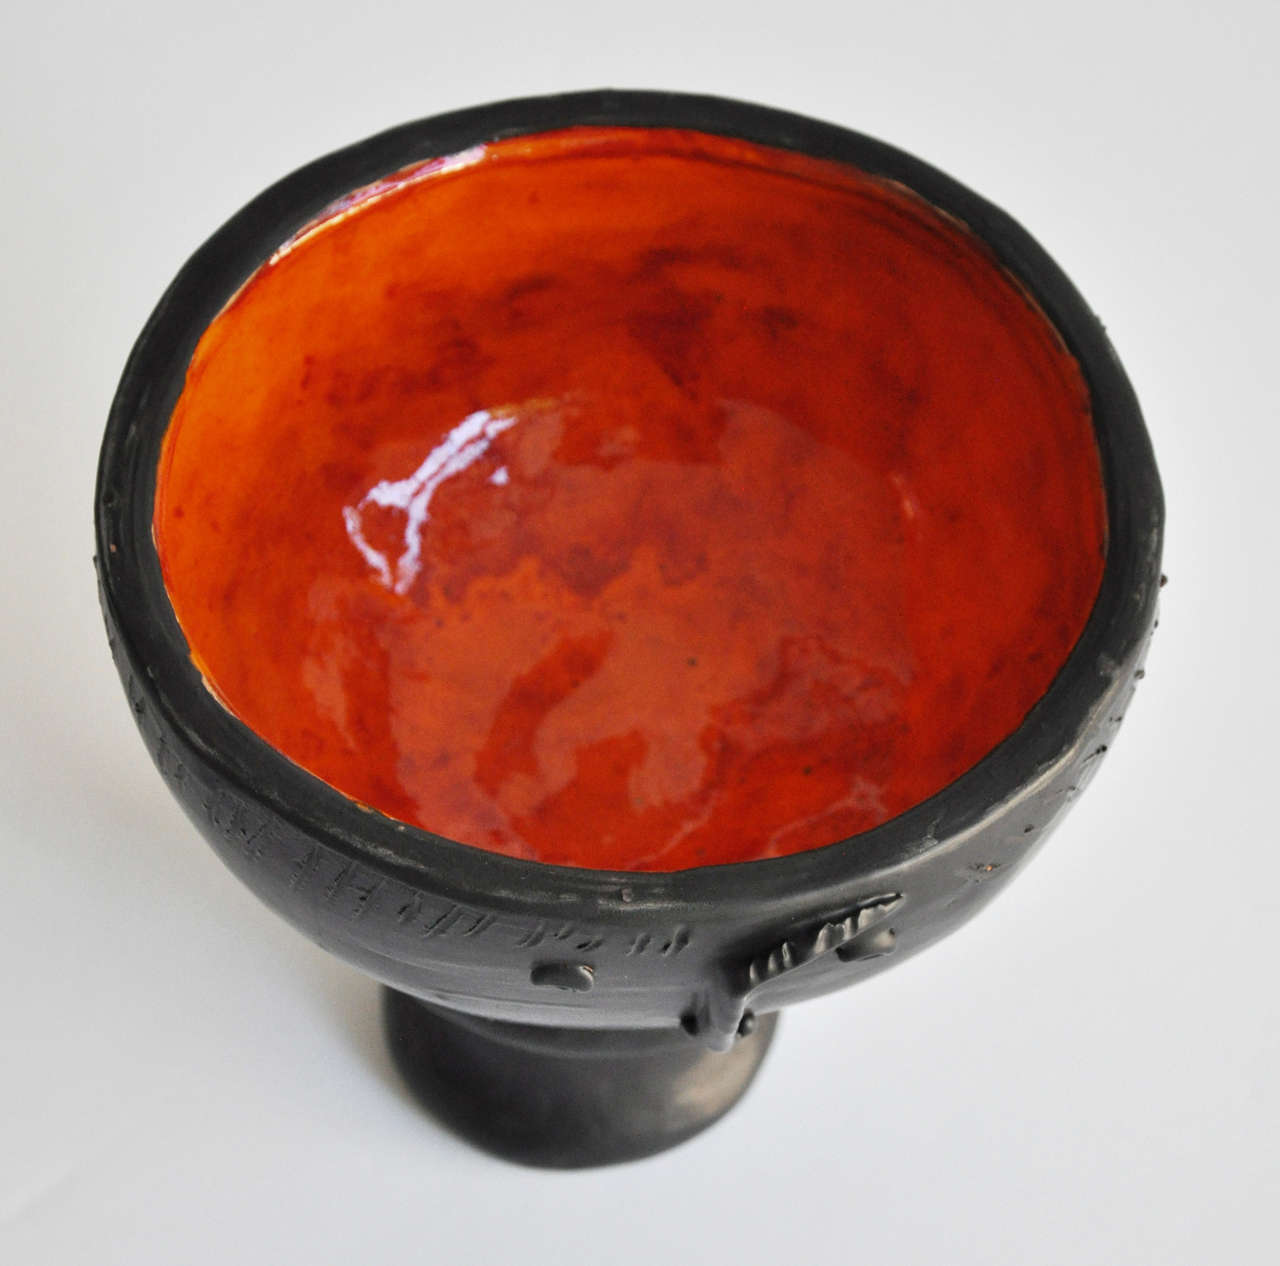 Midcentury French Ceramic Vase by Les Freres Cloutier In Excellent Condition For Sale In Winnetka, IL